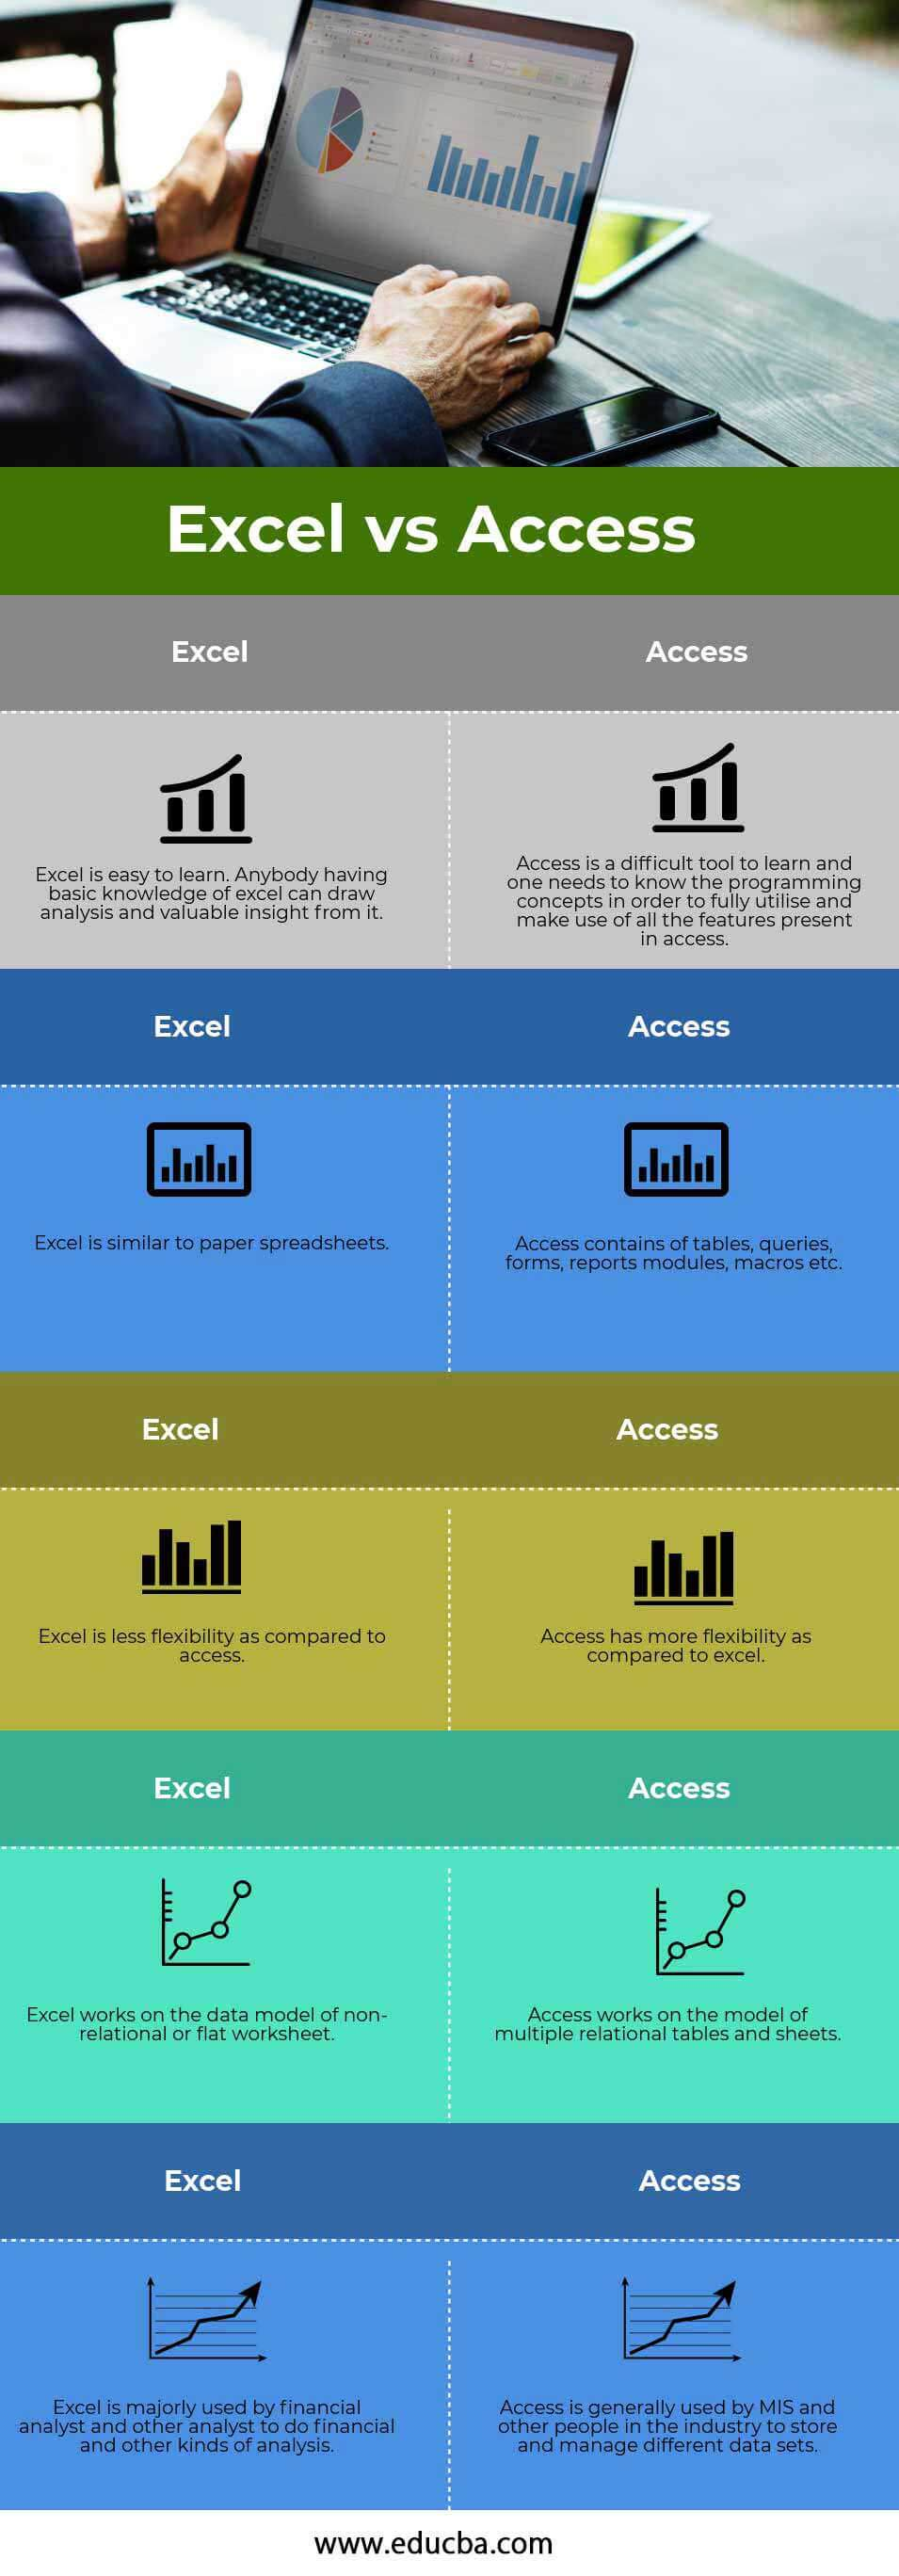 Excel vs Access info